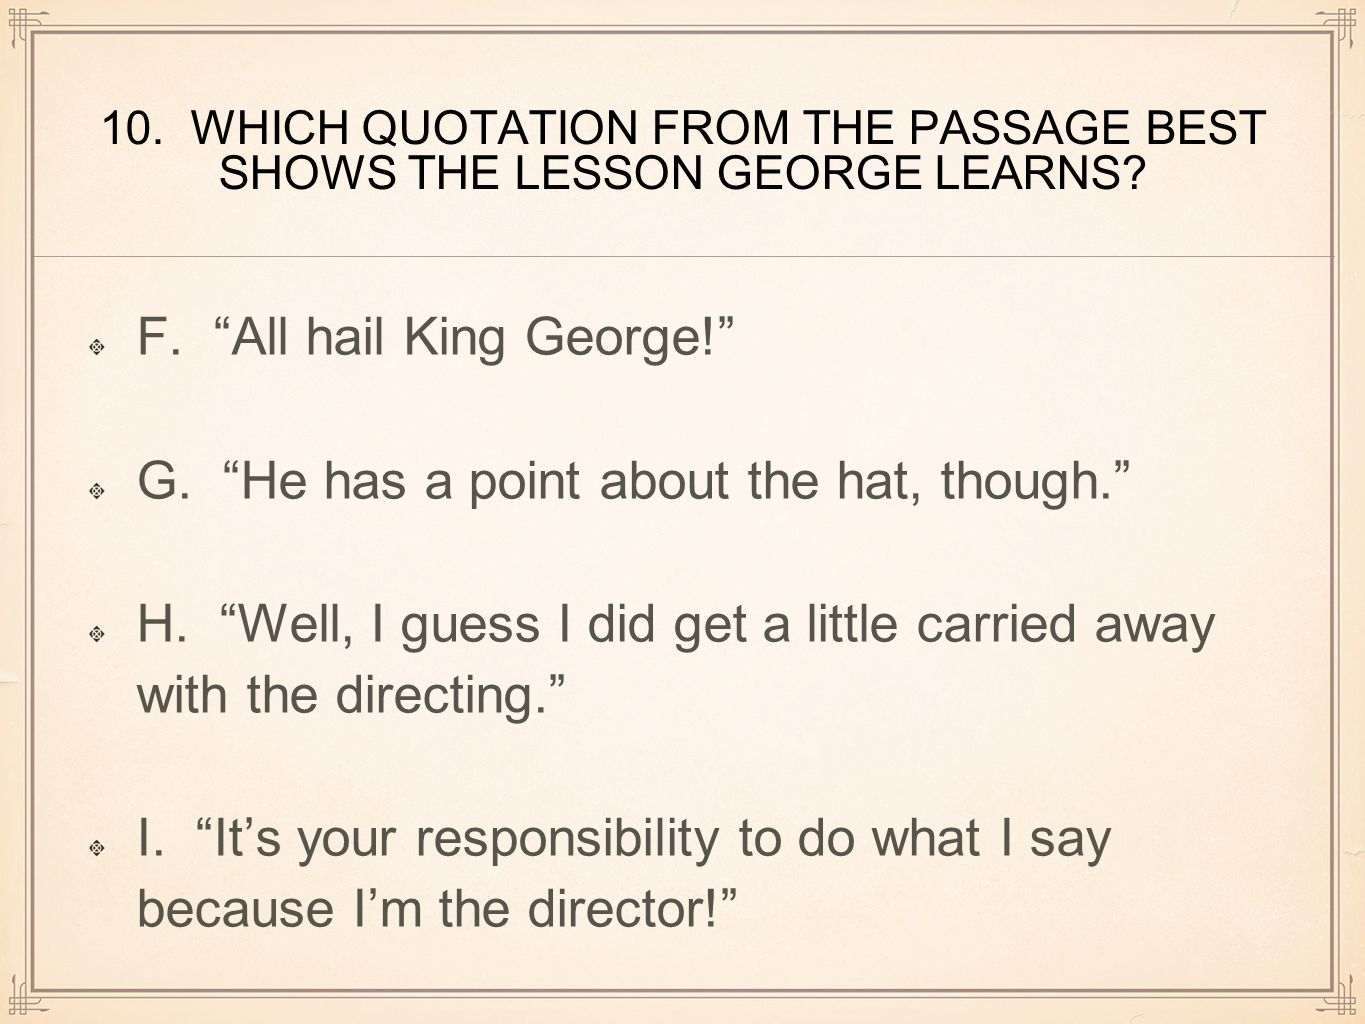 F. All hail King George! G. He has a point about the hat, though.